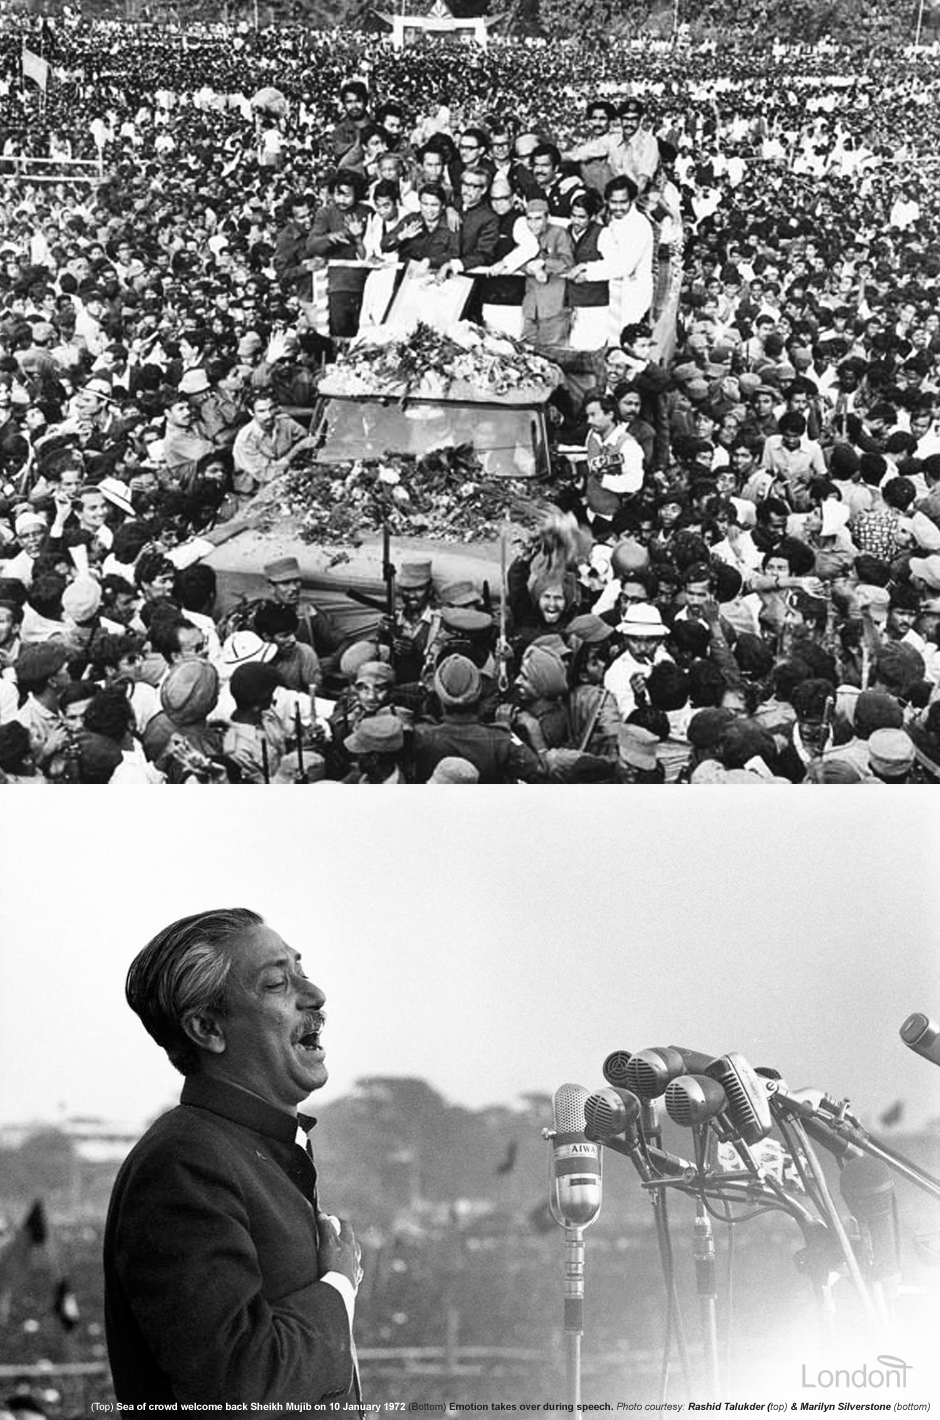 Return of Sheikh Mujibur Rahman from West Pakistani prison to Dhaka on 10 January 1972